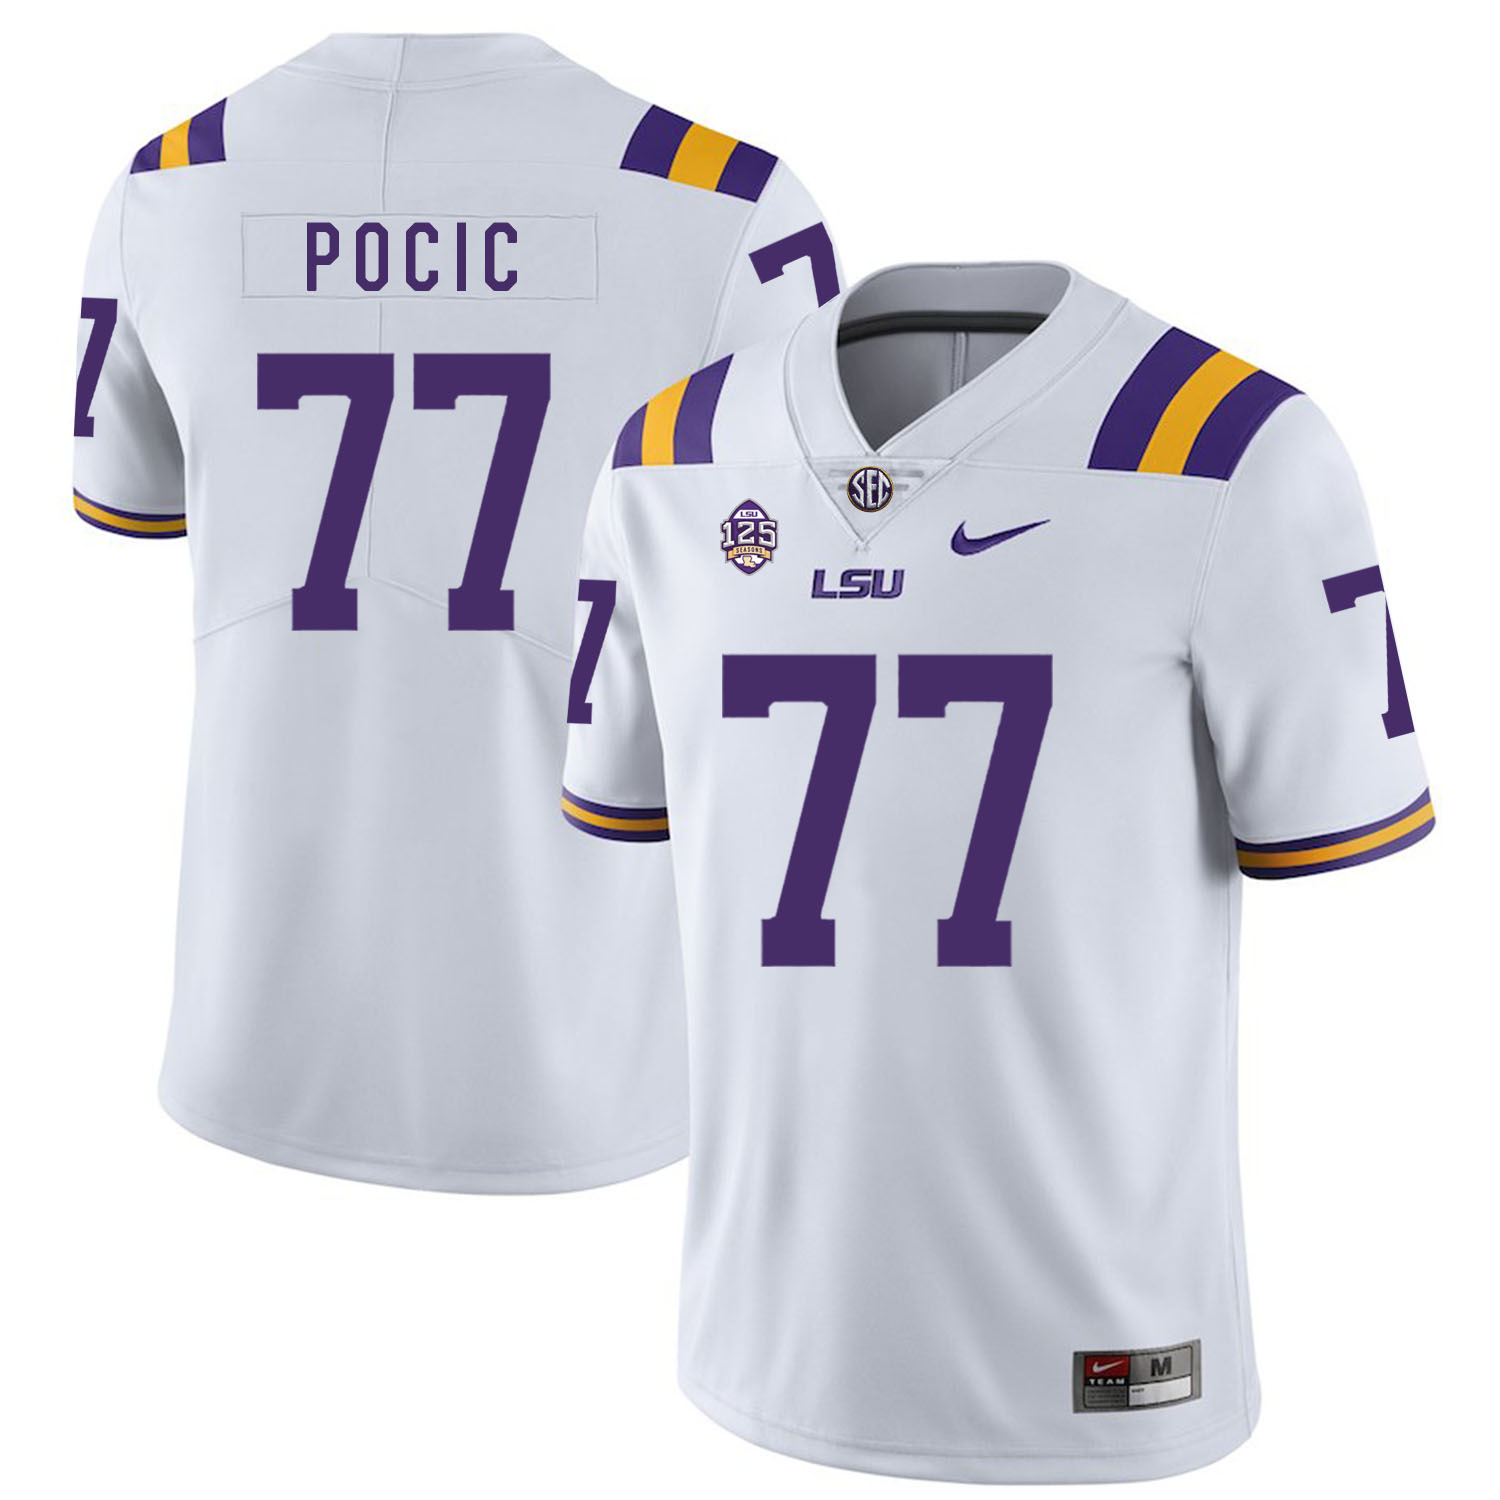 LSU Tigers 77 Ethan Pocic White Nike College Football Jersey